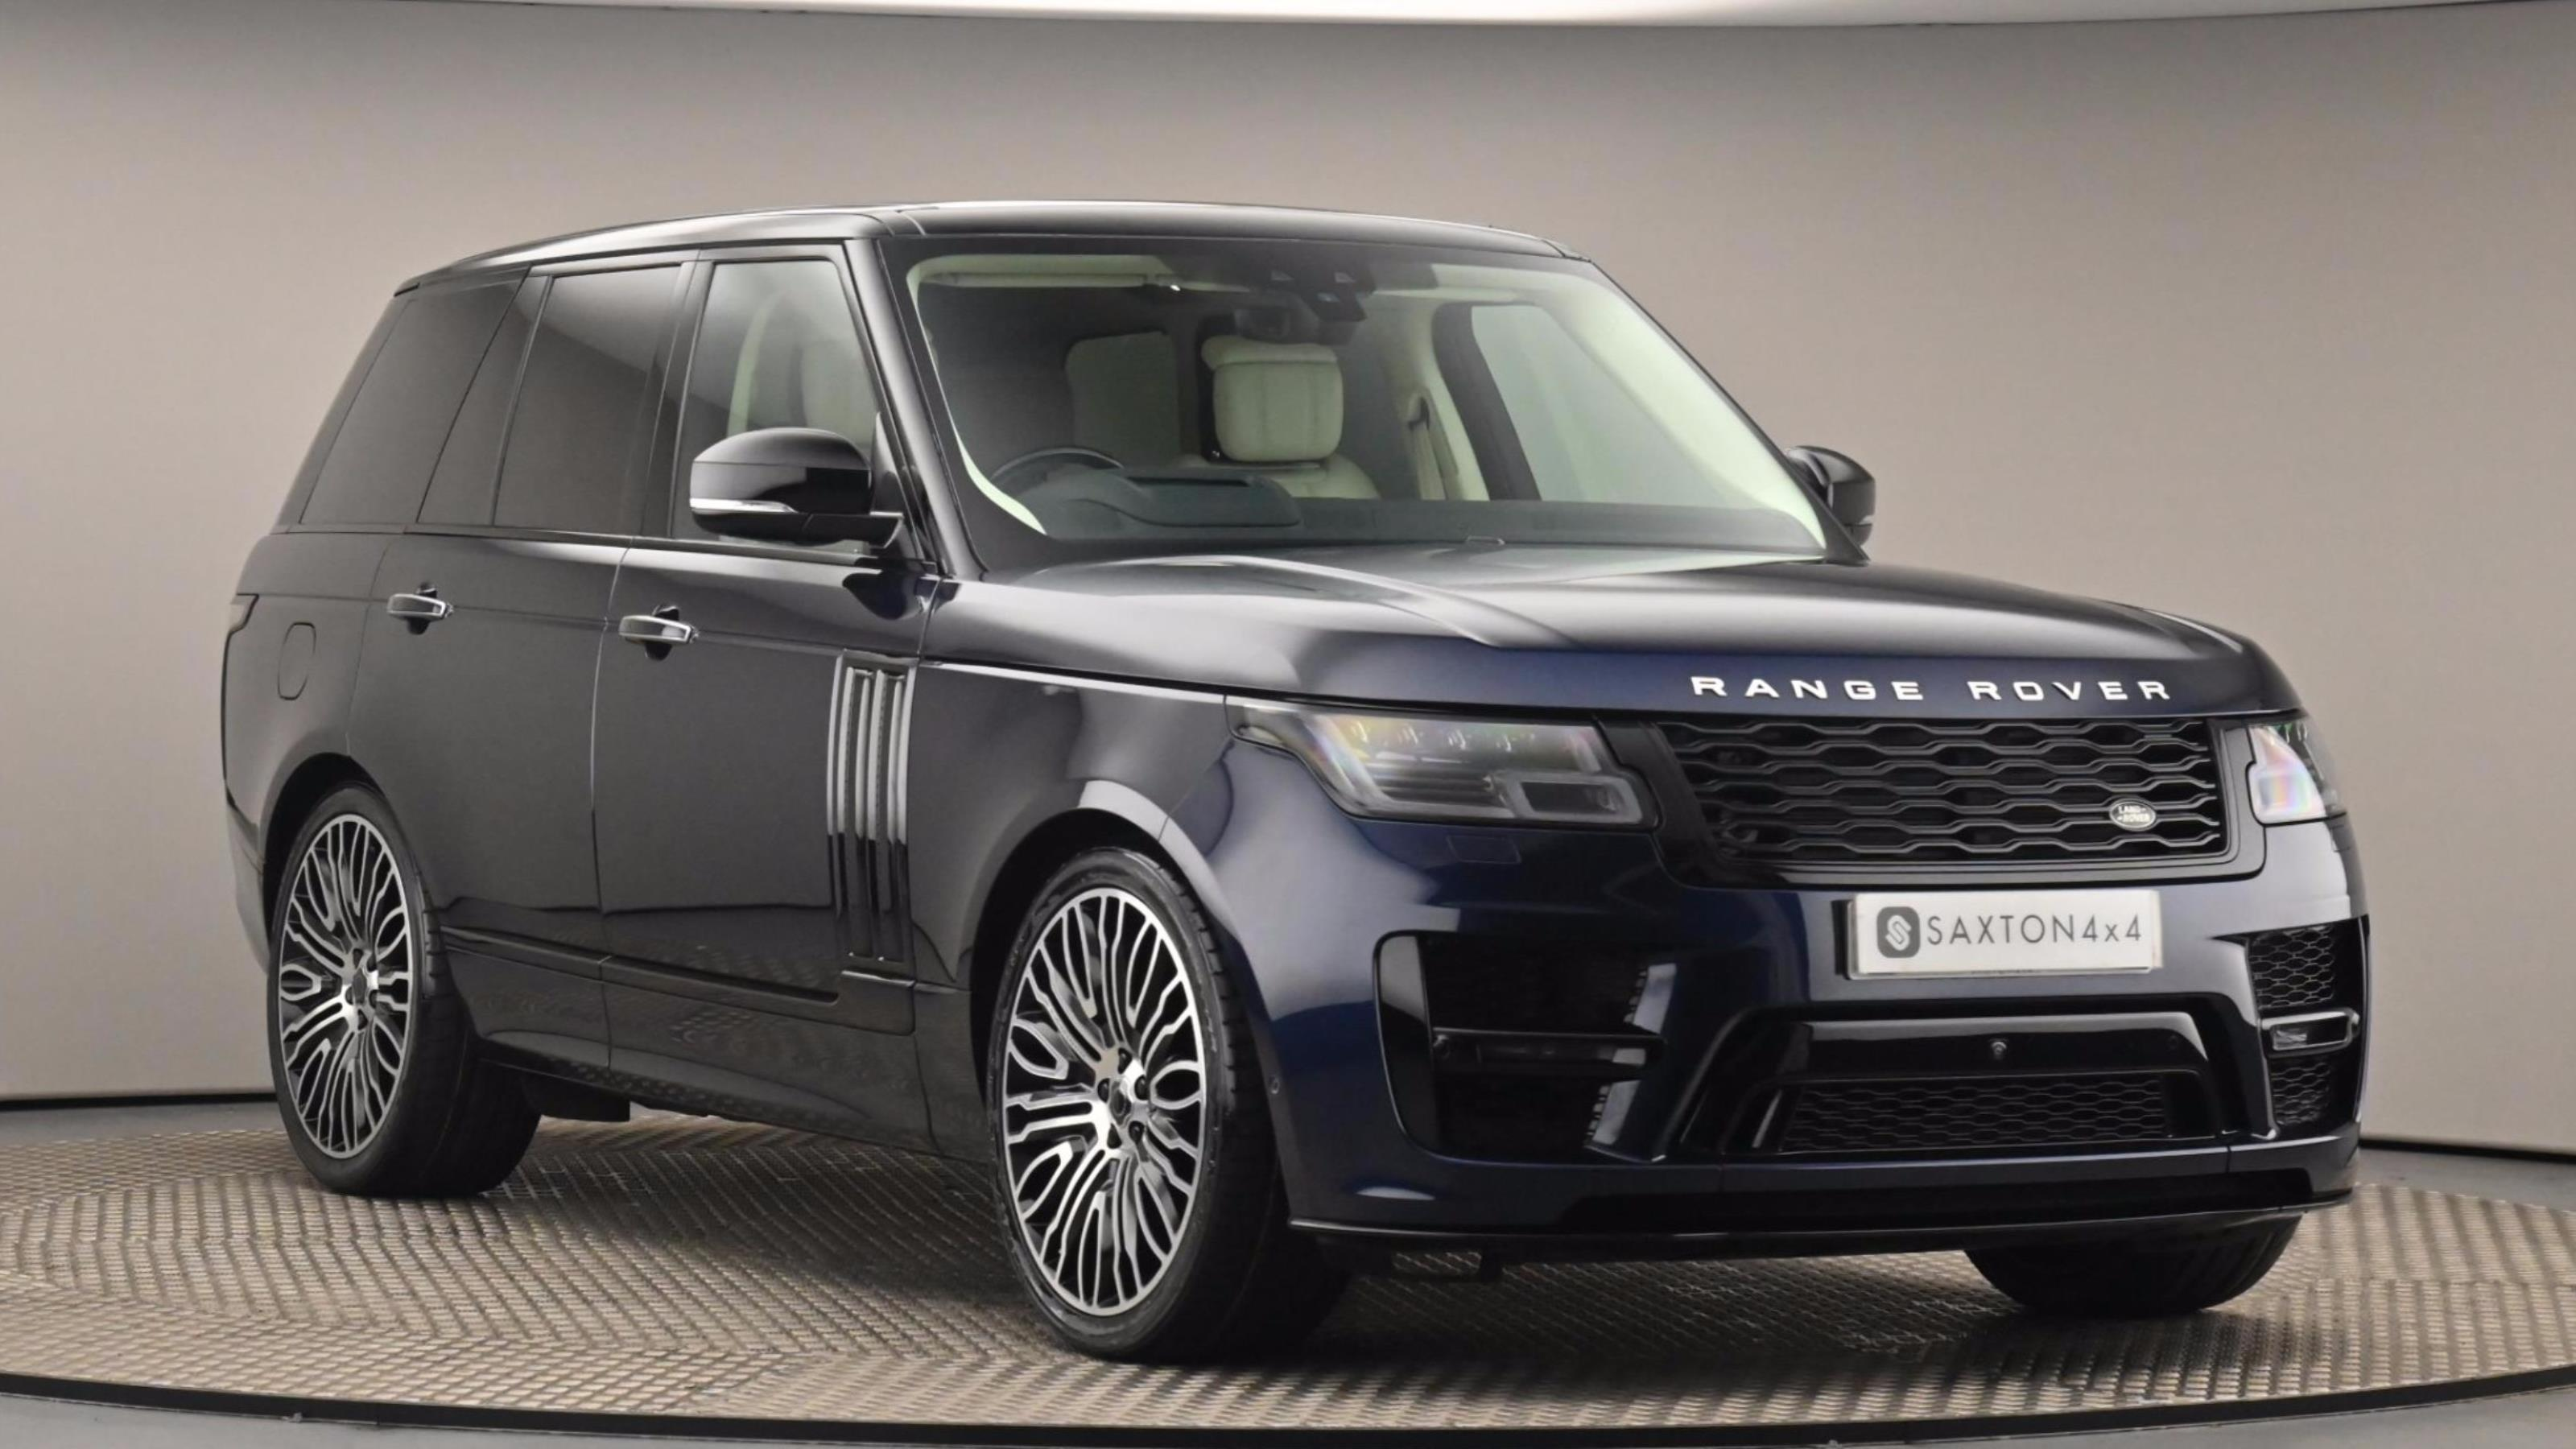 Used 2019 Land Rover RANGE ROVER 5.0 V8 S/C Autobiography 4dr Auto Blue at Saxton4x4